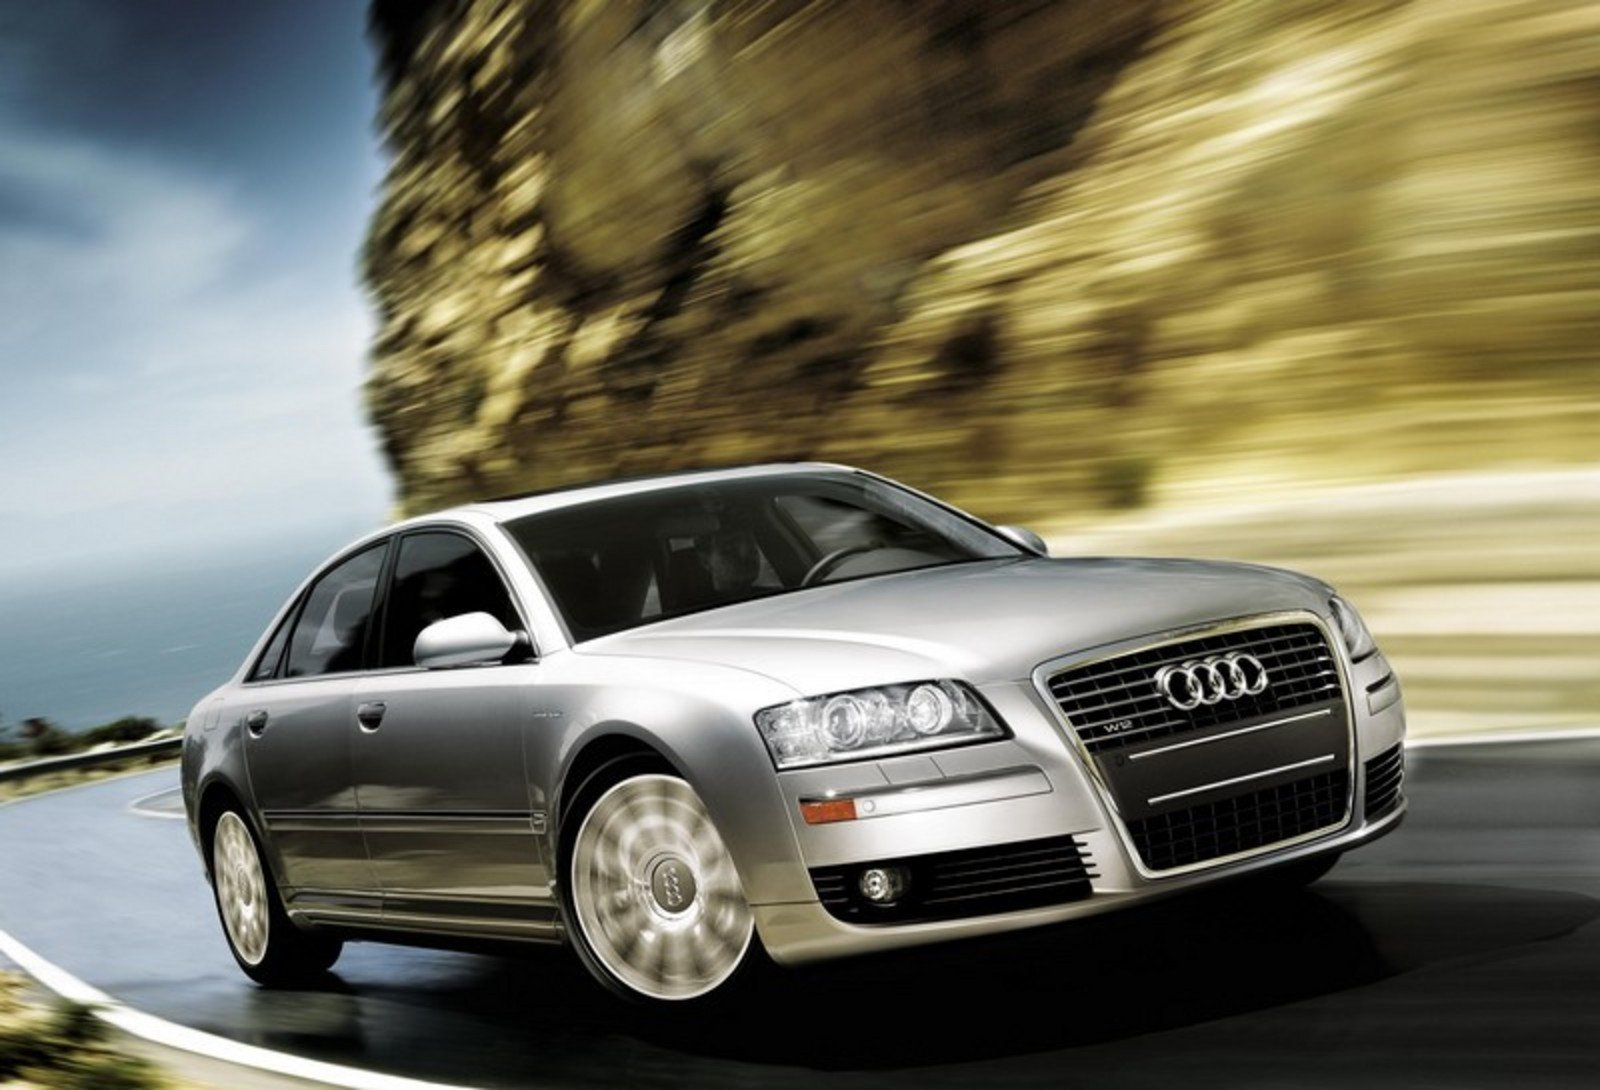 2006 audi a8 l w12 review top speed. Black Bedroom Furniture Sets. Home Design Ideas